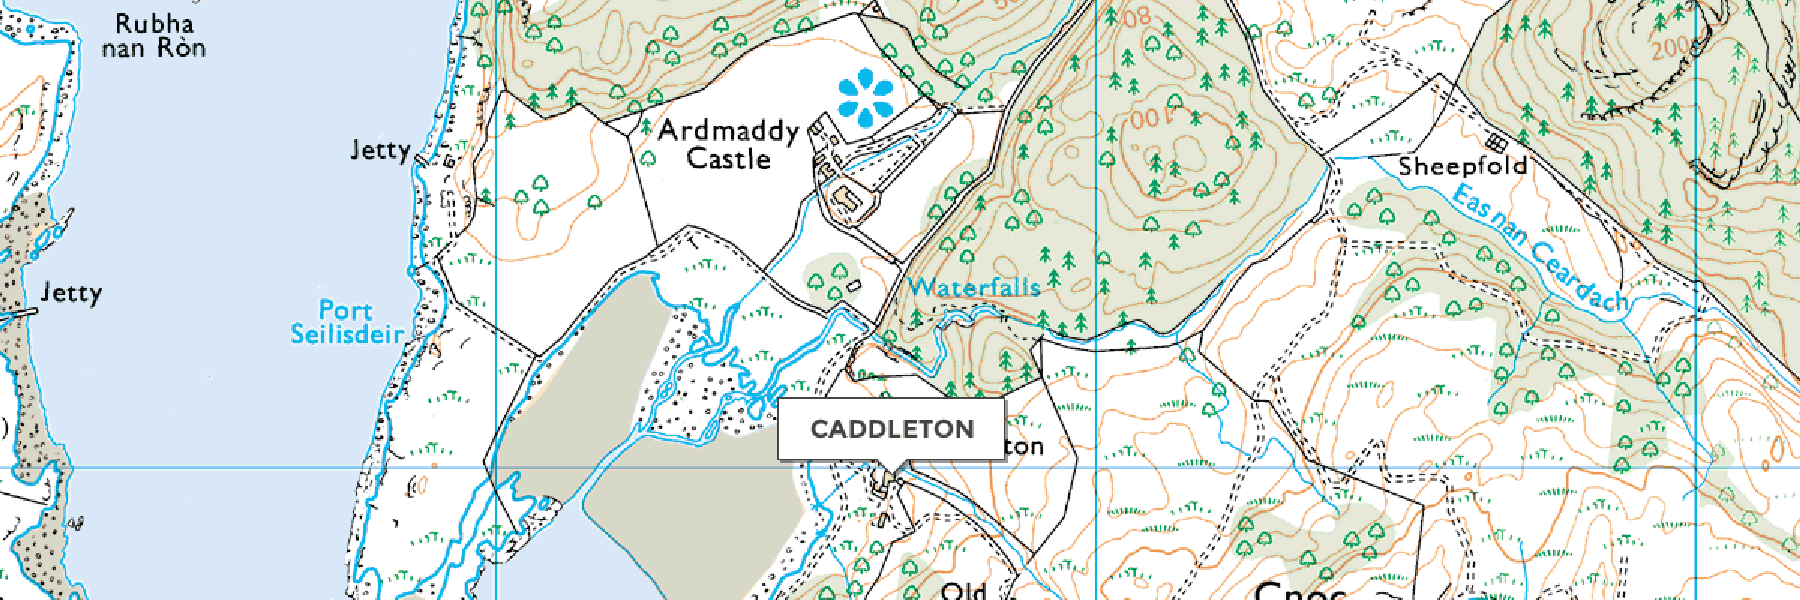 Caddleton Map